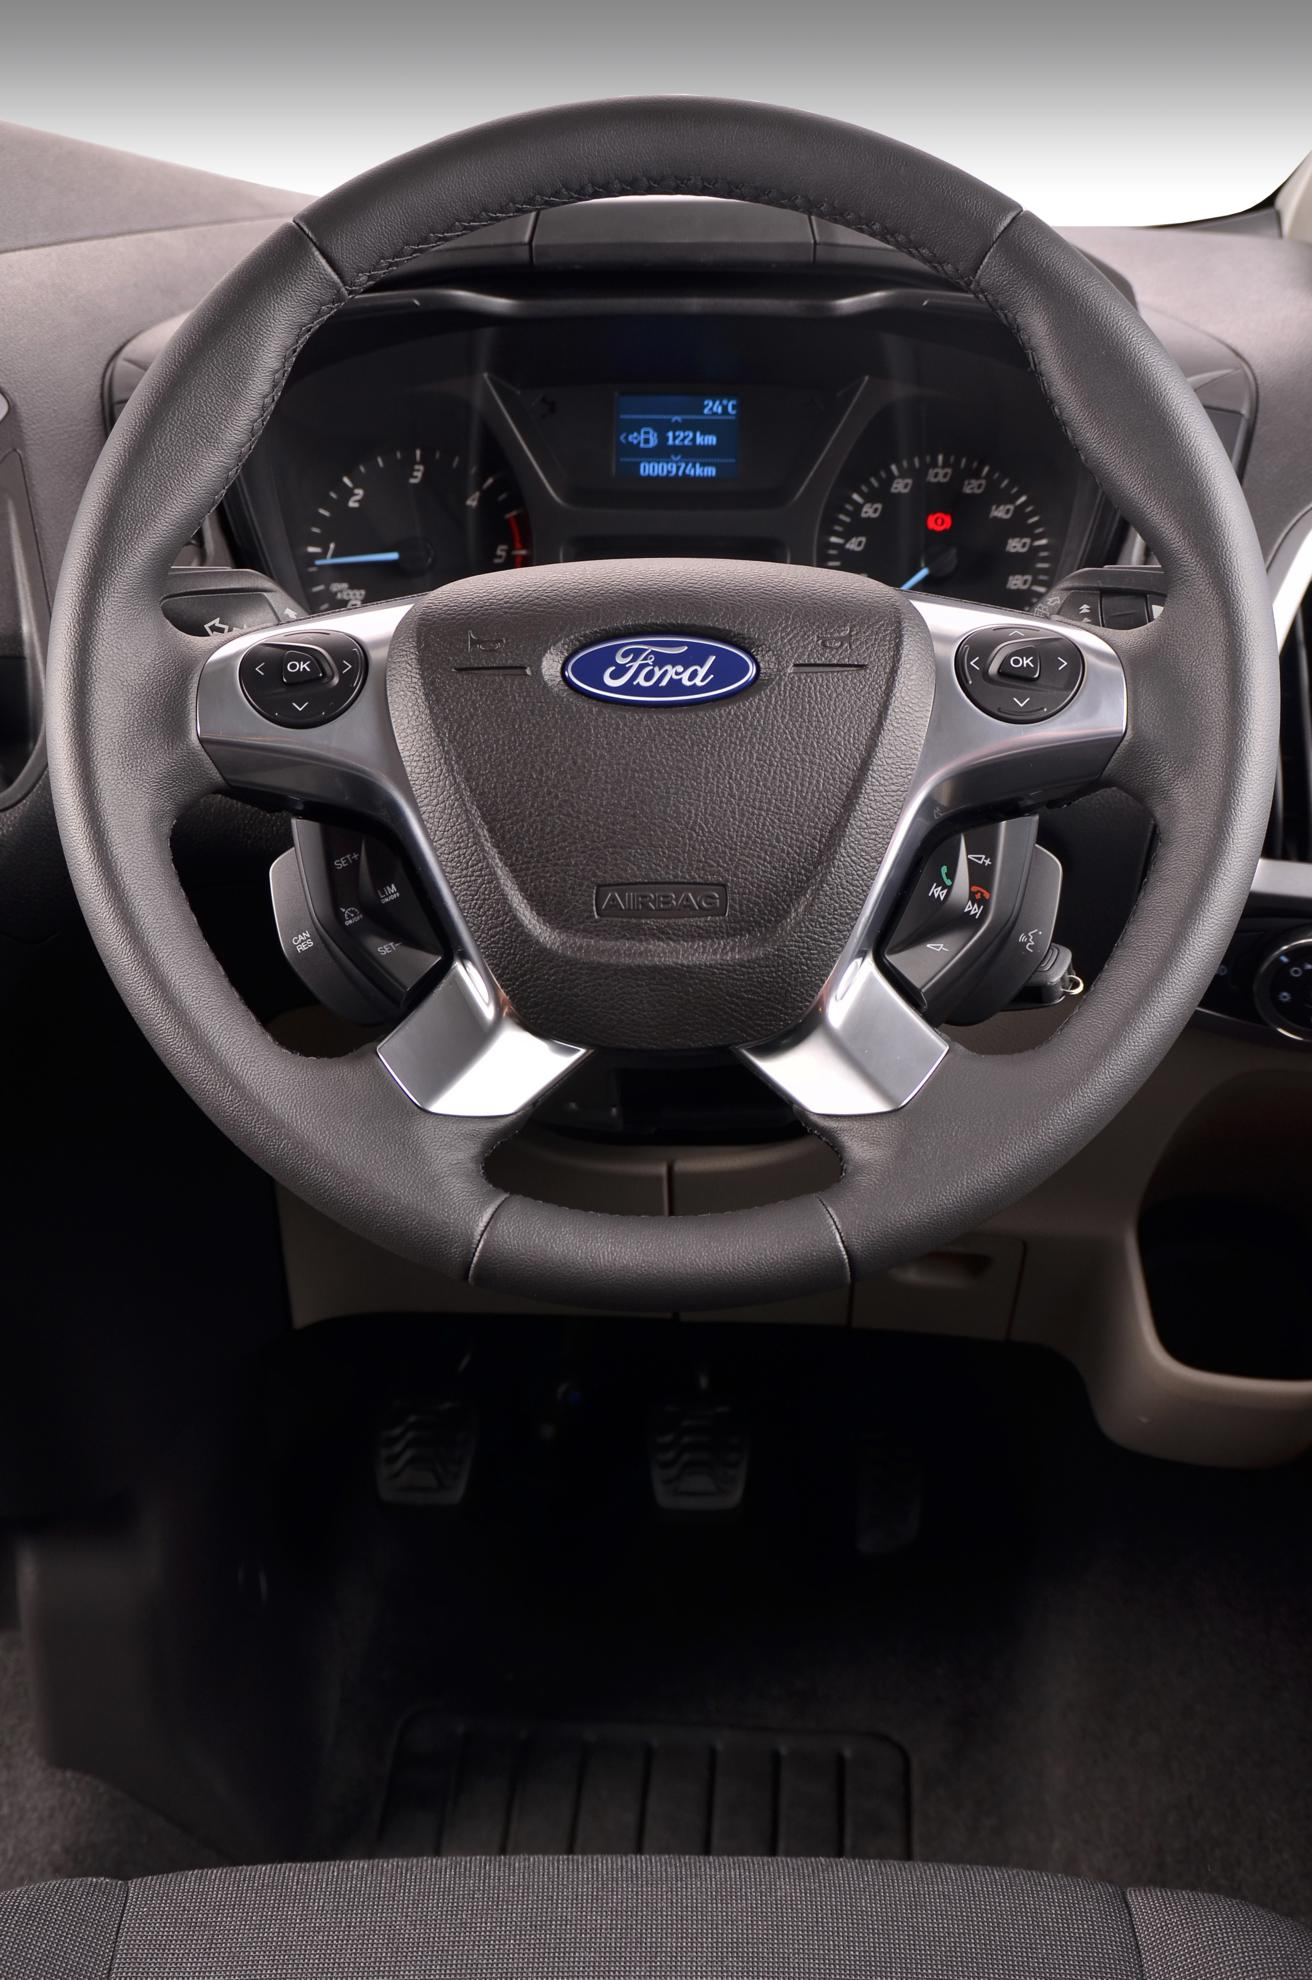 Ford Tourneo Steering Wheel